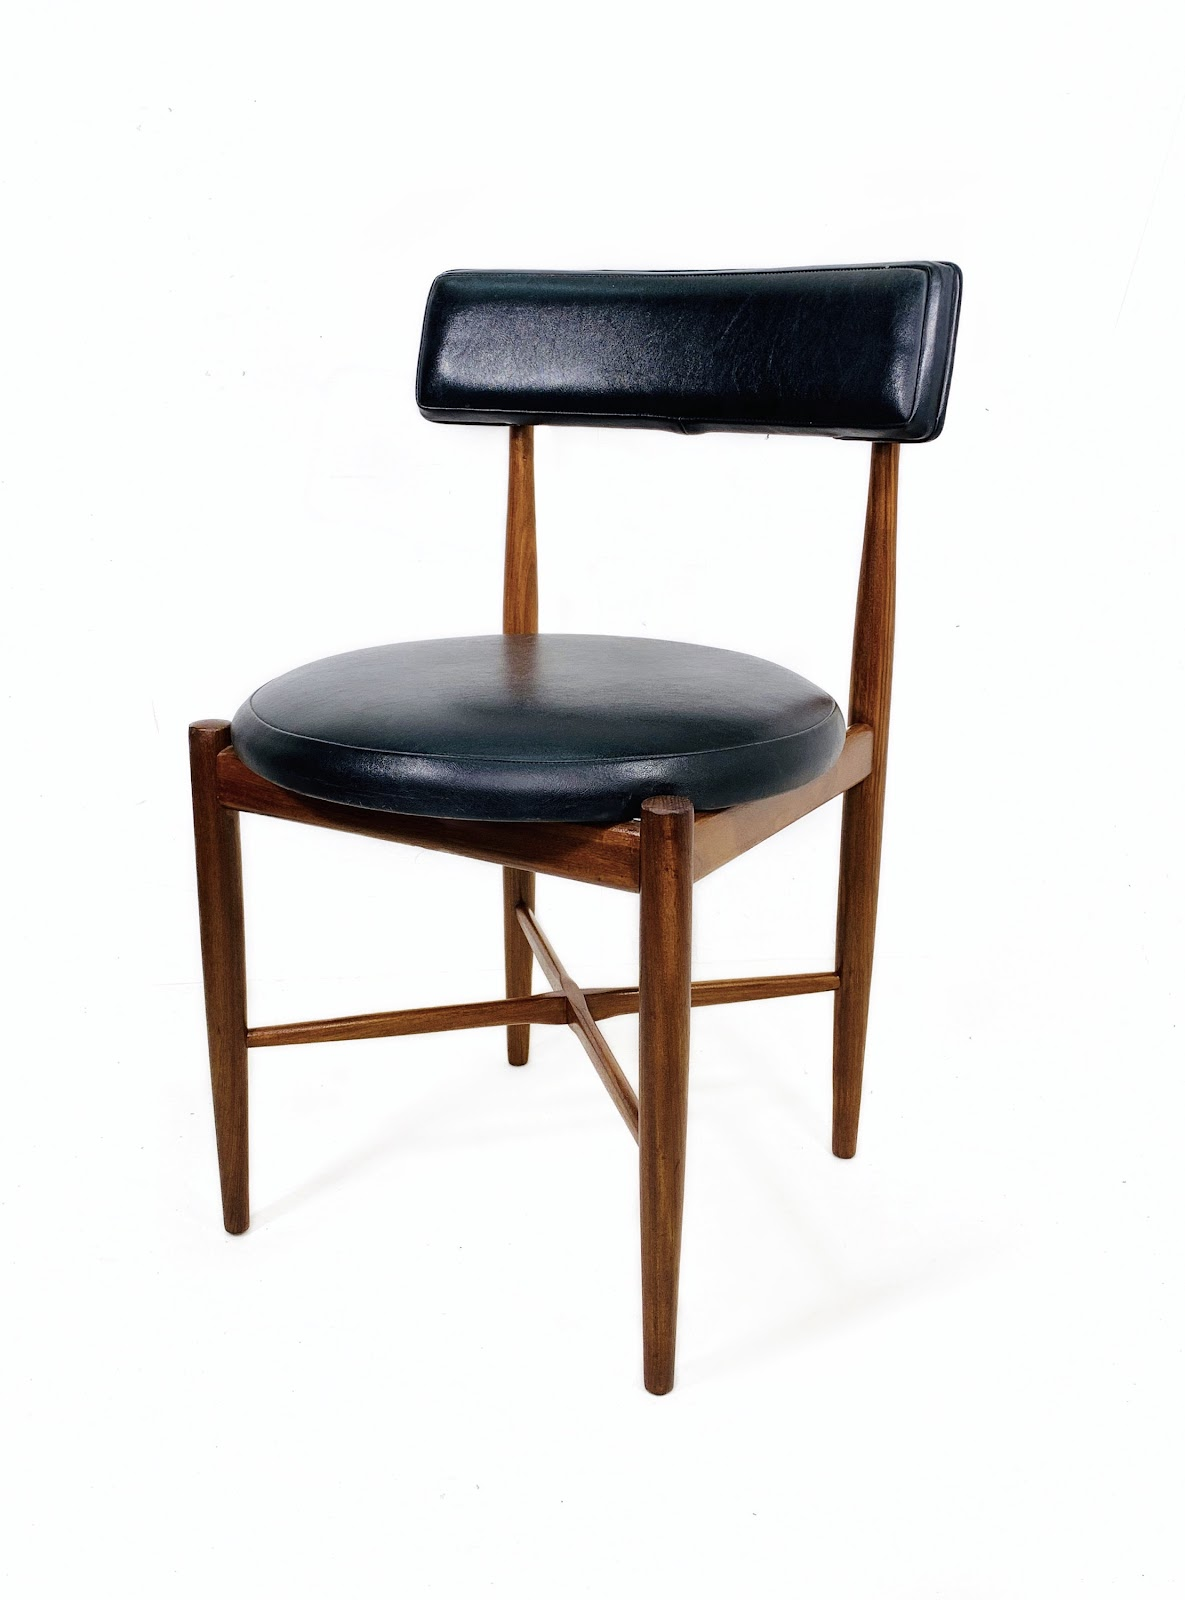 A guide to buying G Plan furniture